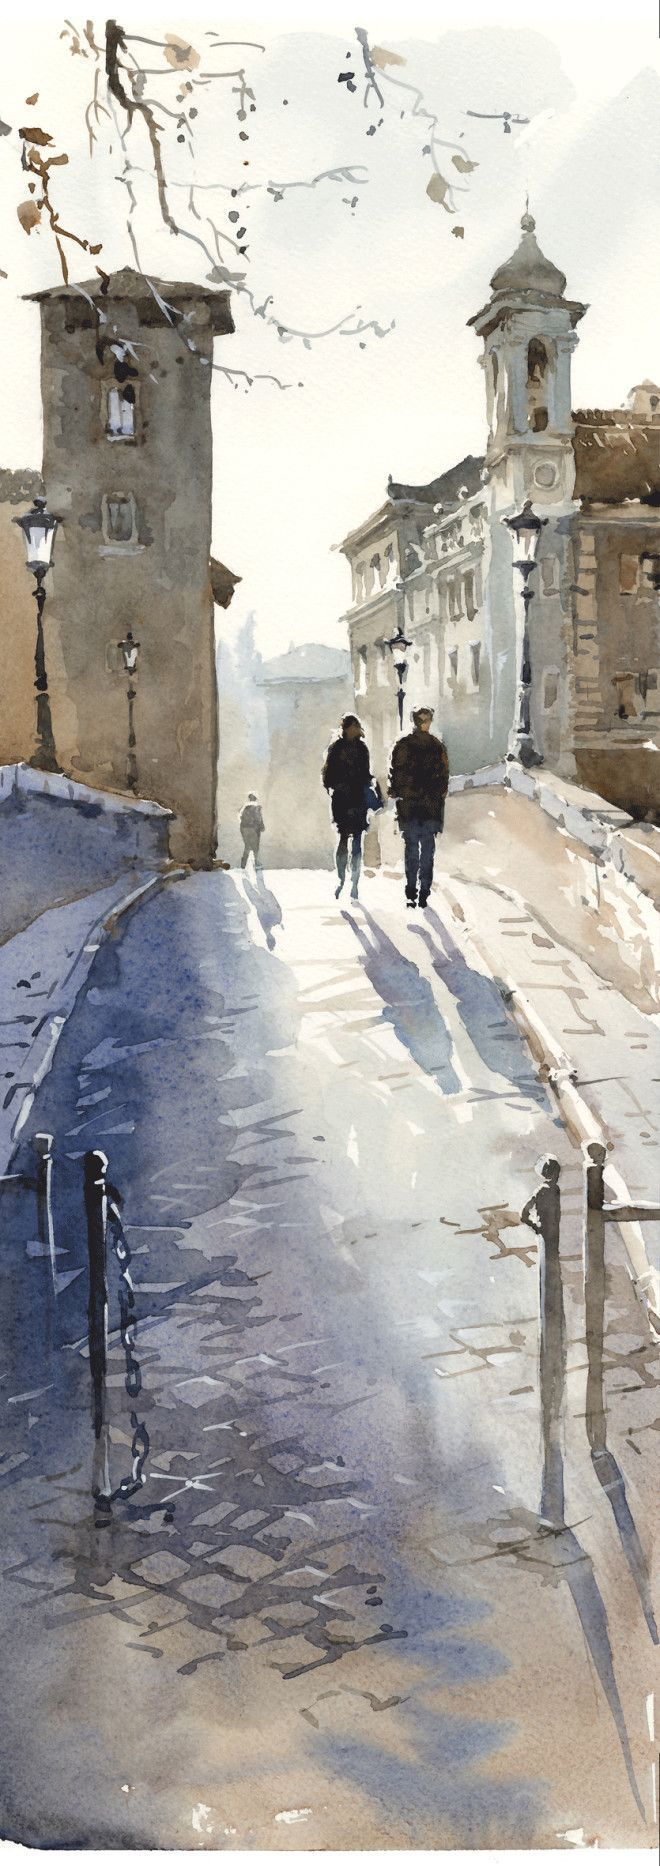 Fabricio | Igor Sava, watercolor